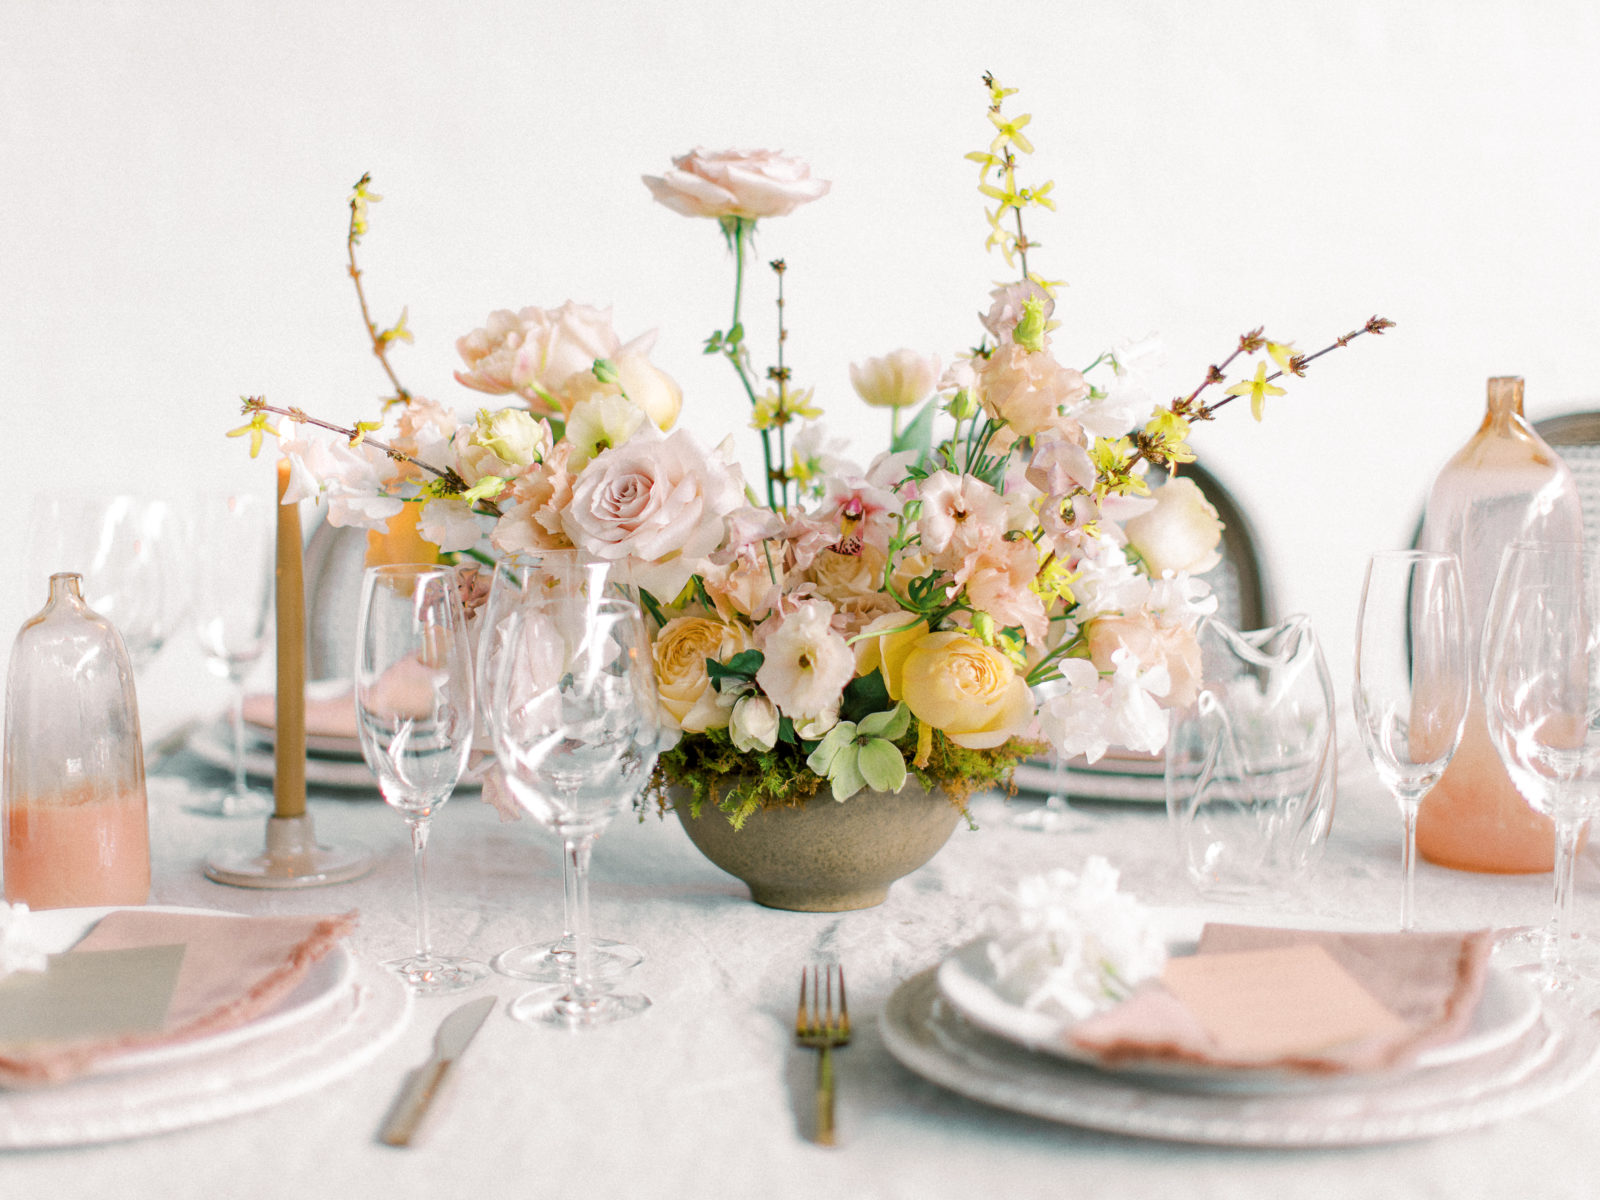 Whimsical wedding table decor: Whimsical Wedding Inspiration at The Place at Tyler from The Bridal Masterclass featured on Alexa Kay Events